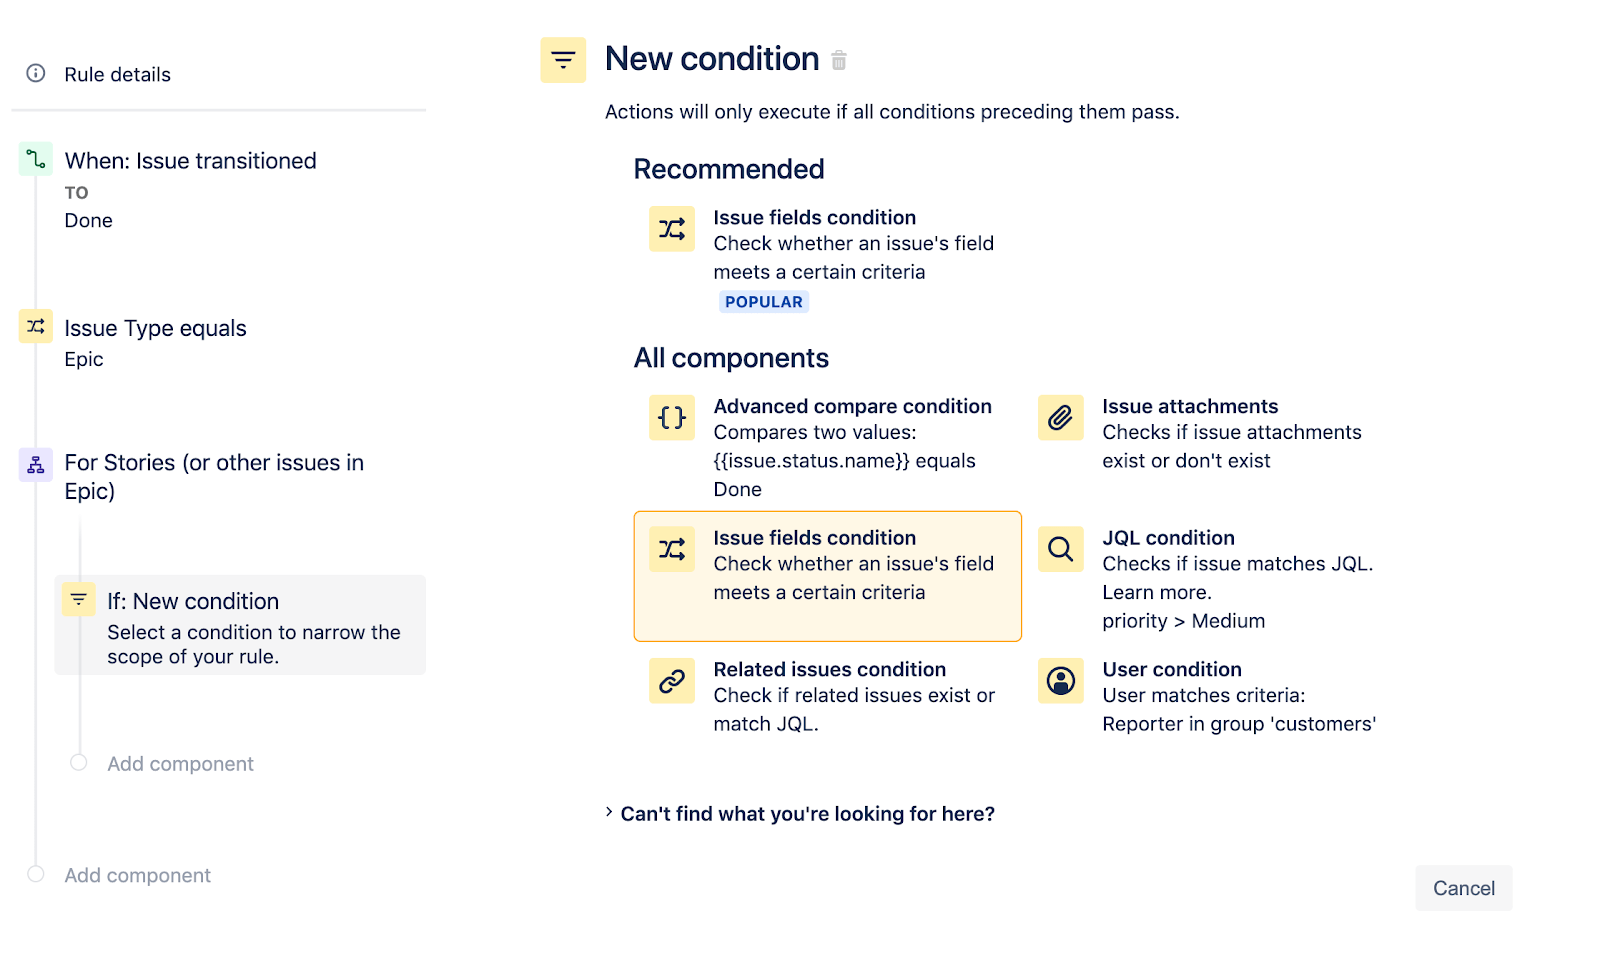 Selecting Issue fields condition